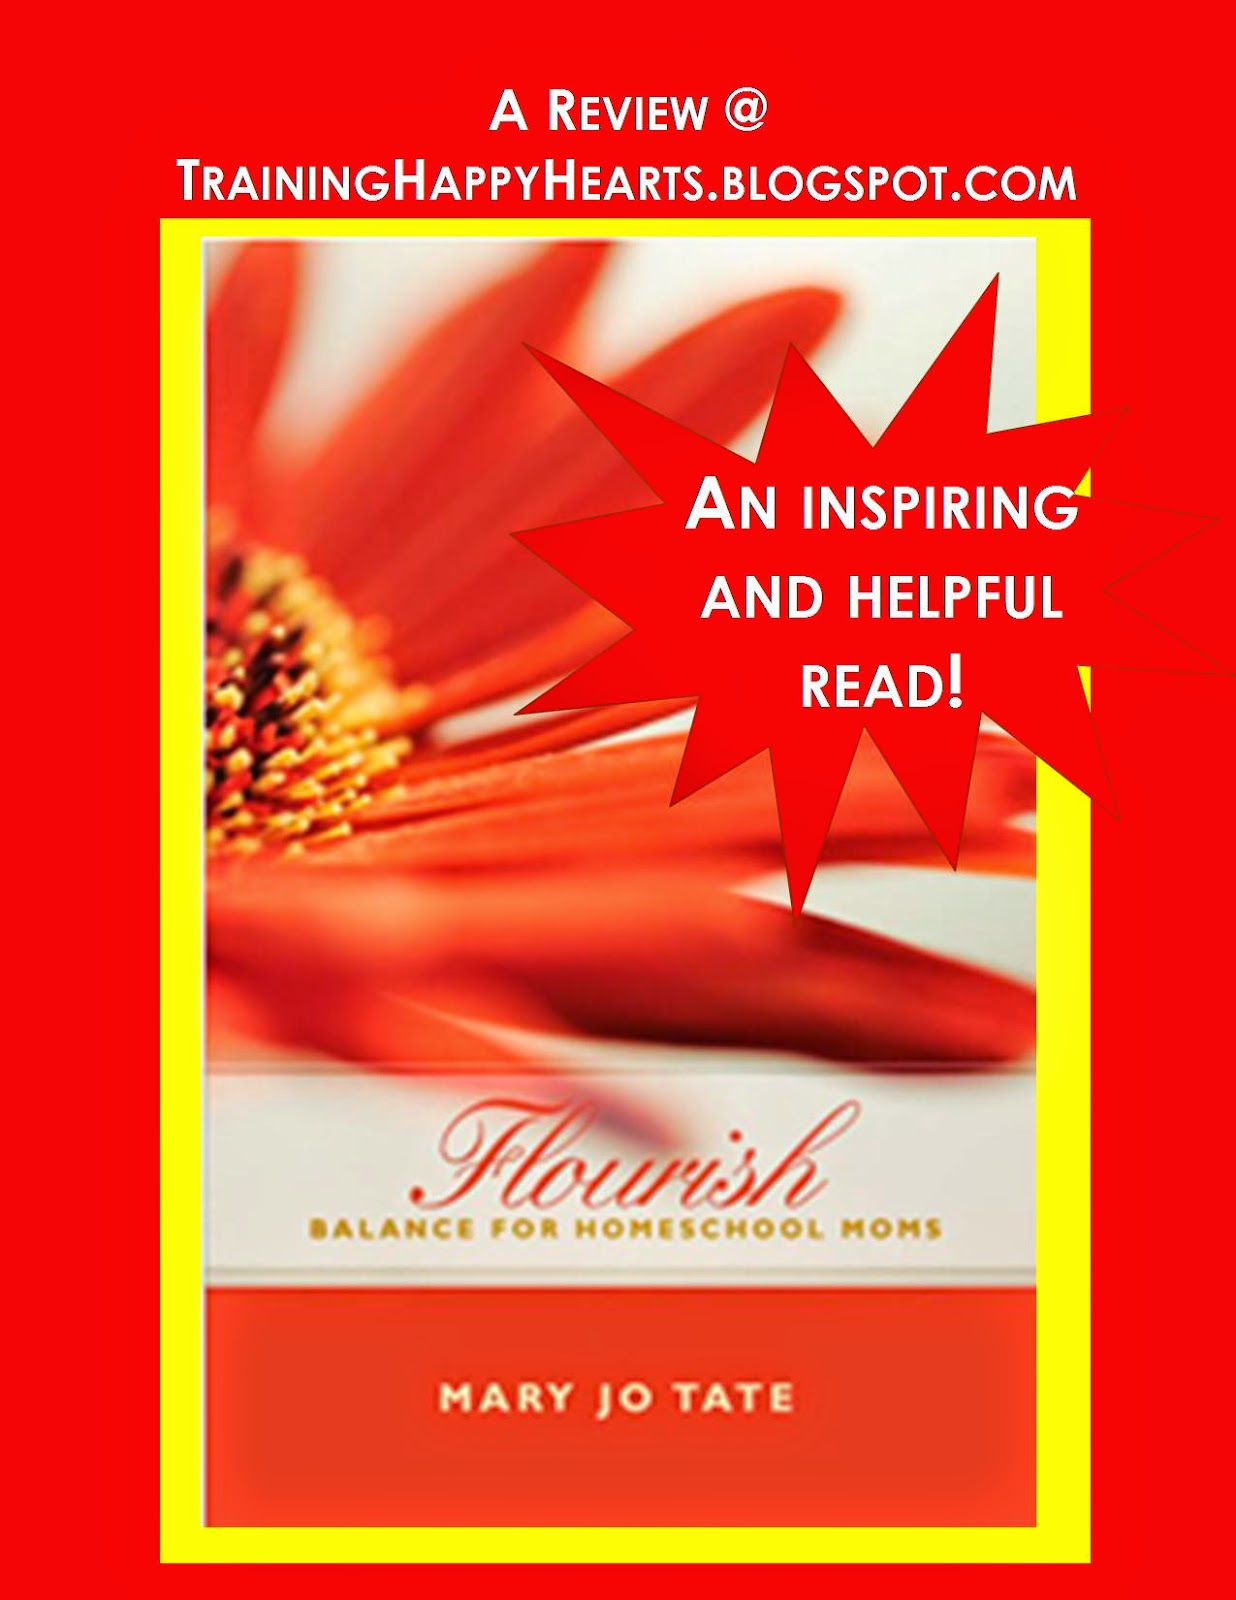 http://traininghappyhearts.blogspot.com/2014/07/are-you-ready-to-flourish-review.html